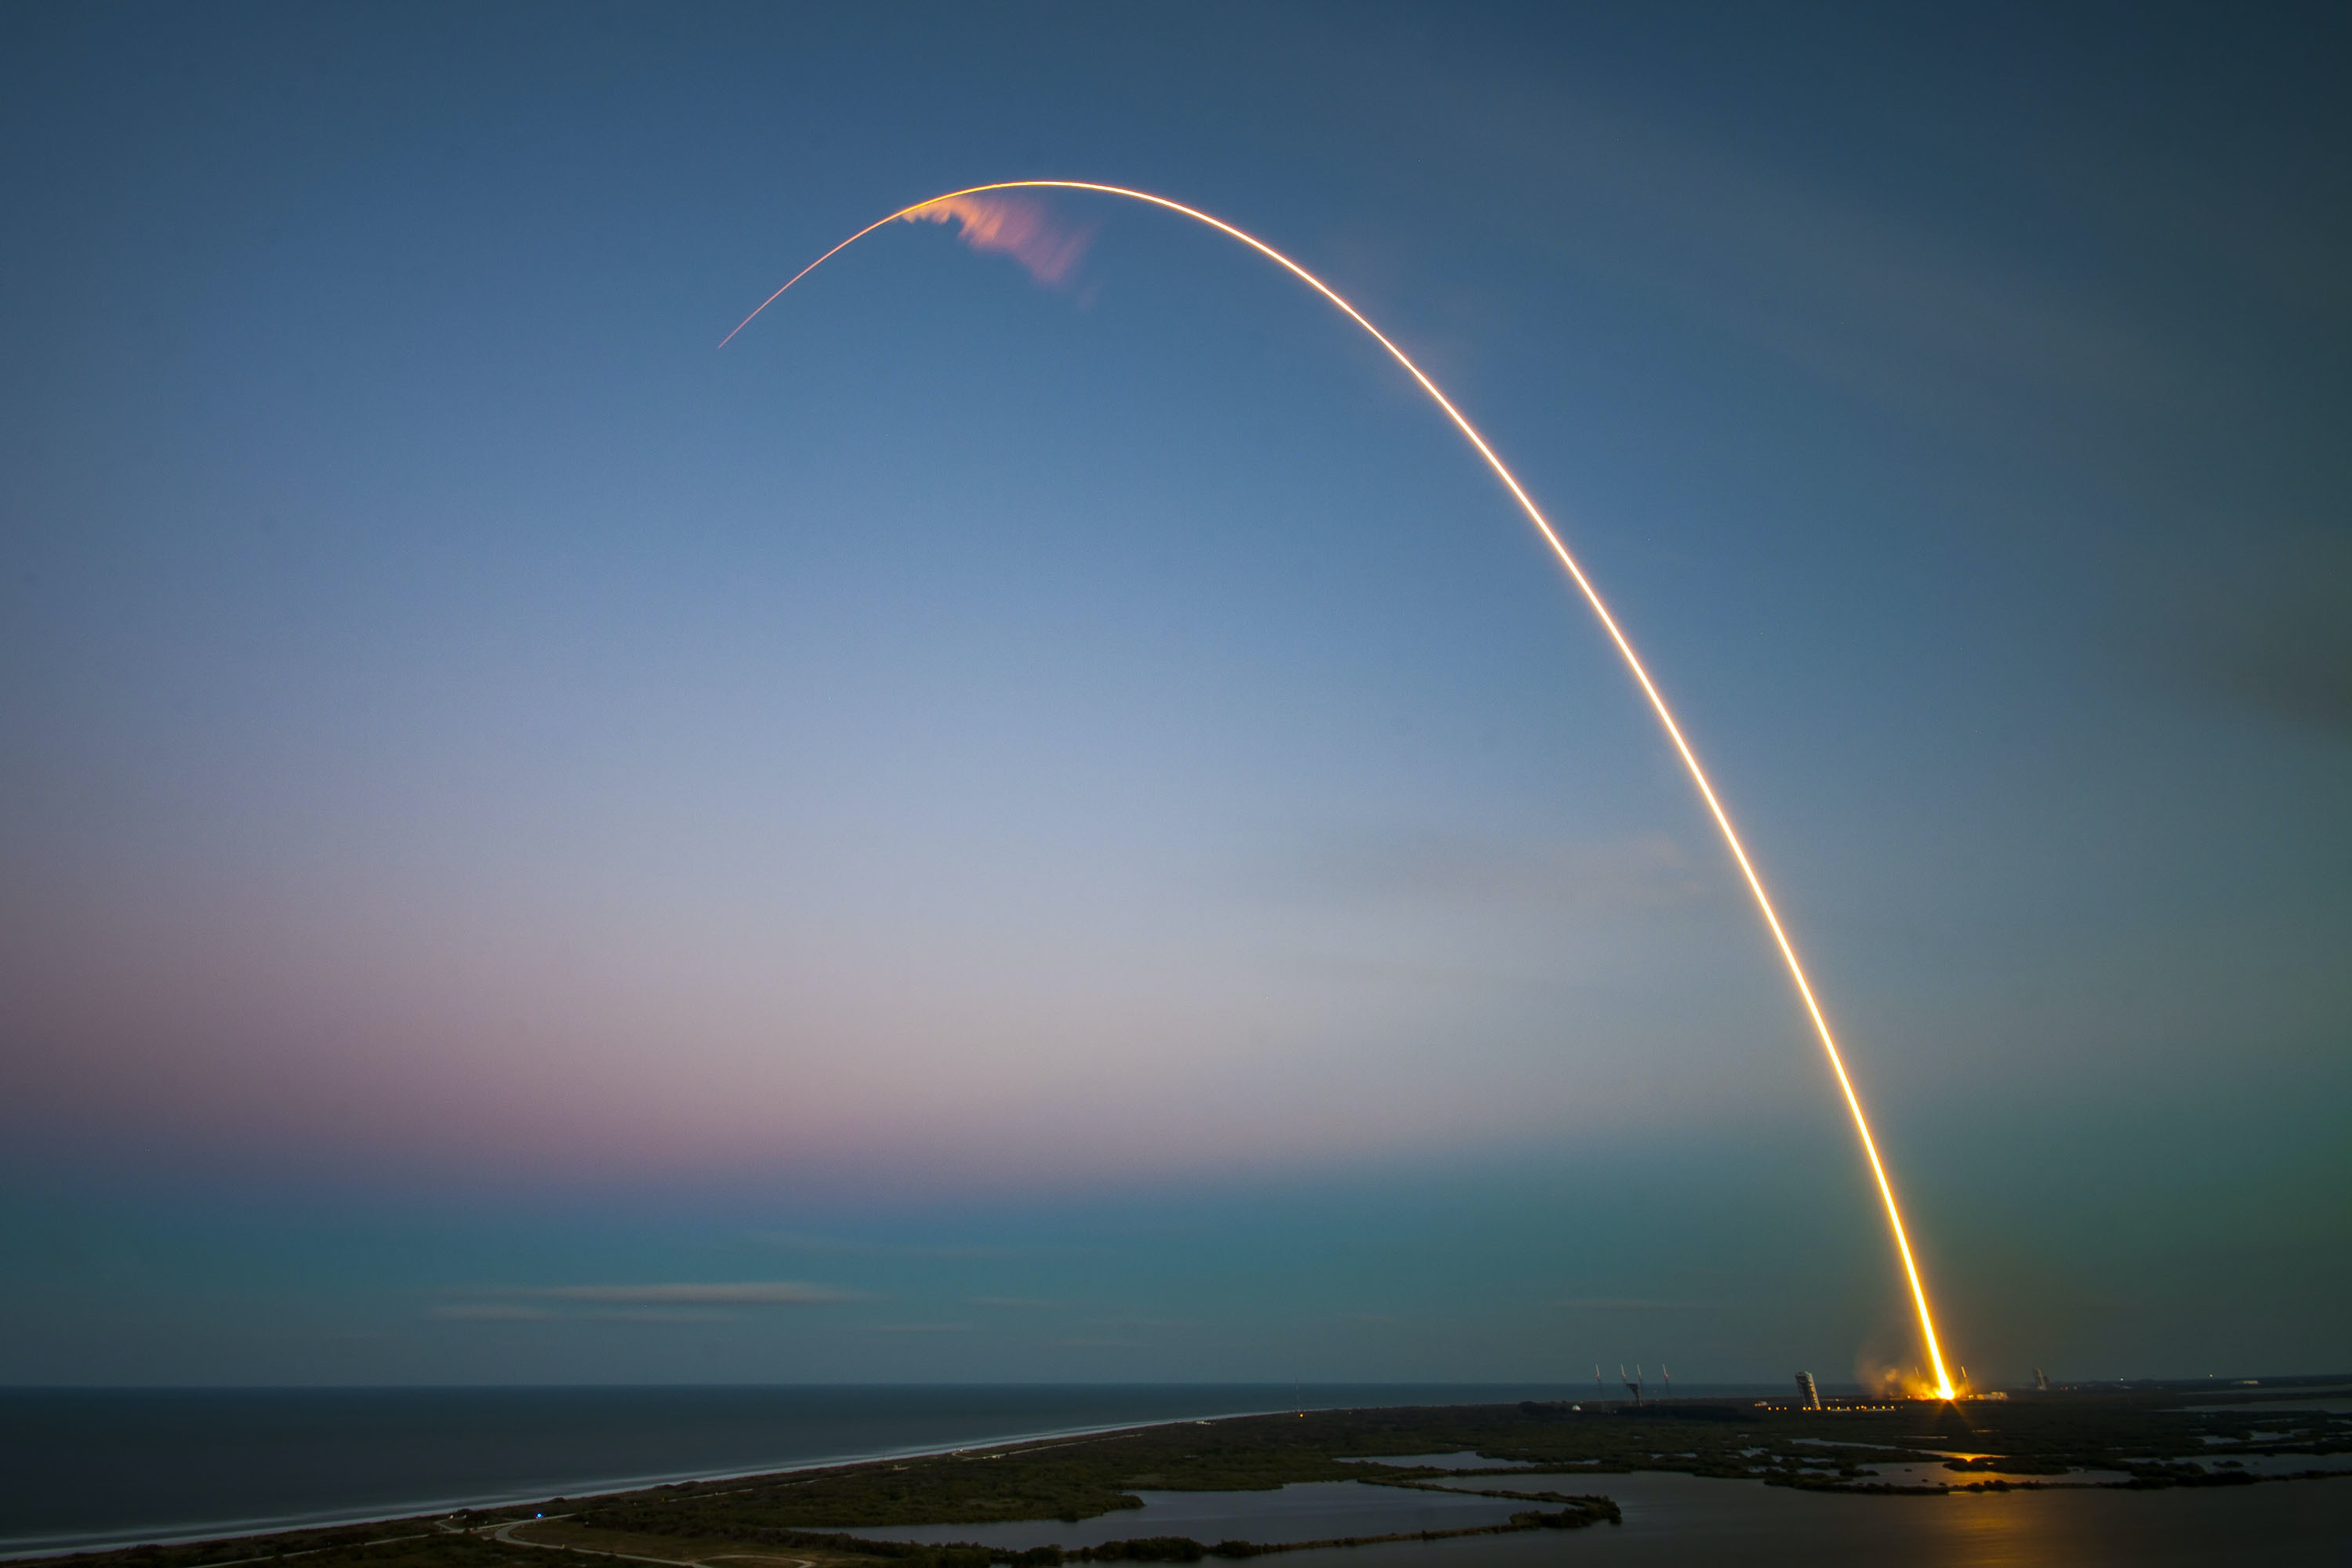 SpaceX's Falcon 9 rocket makes a successful launch with the SES-9 communications satellite on March 4, 2016 in Cape Canaveral, Florida.